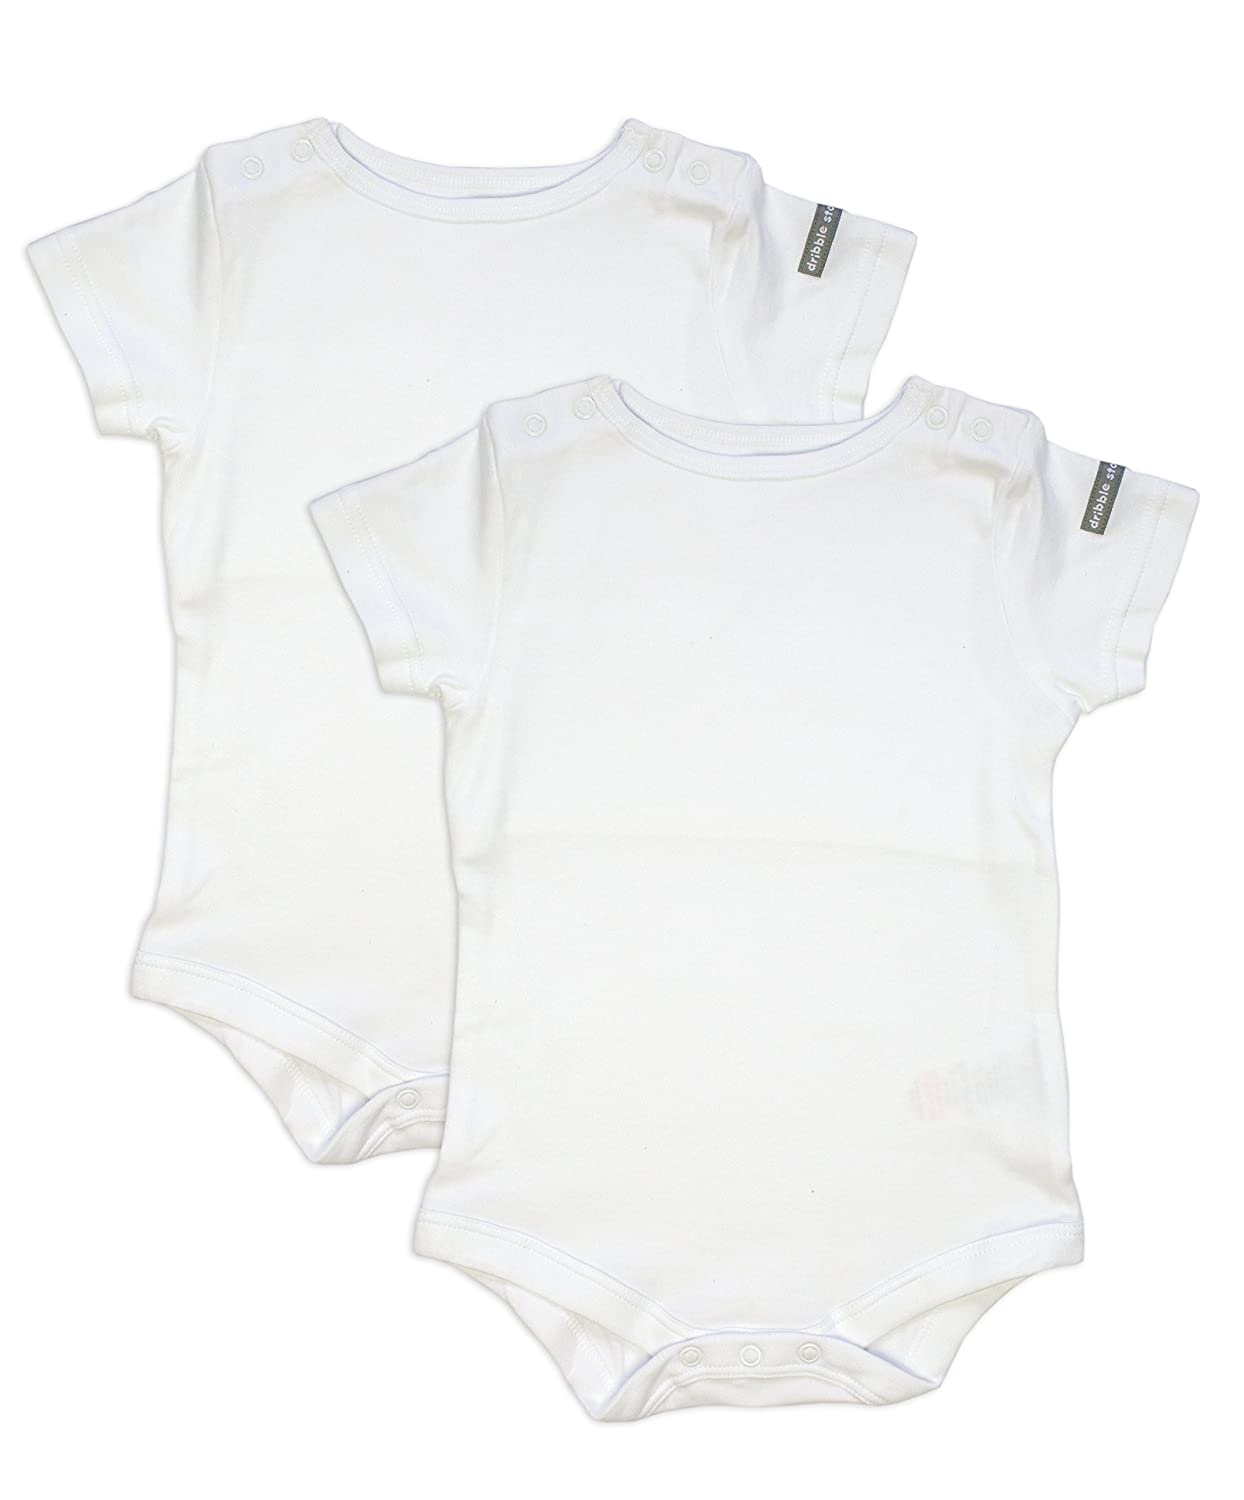 Dribble Stop Top Unisex Baby Packet 2 Vest White 12-18 Months DST BB Body Suit